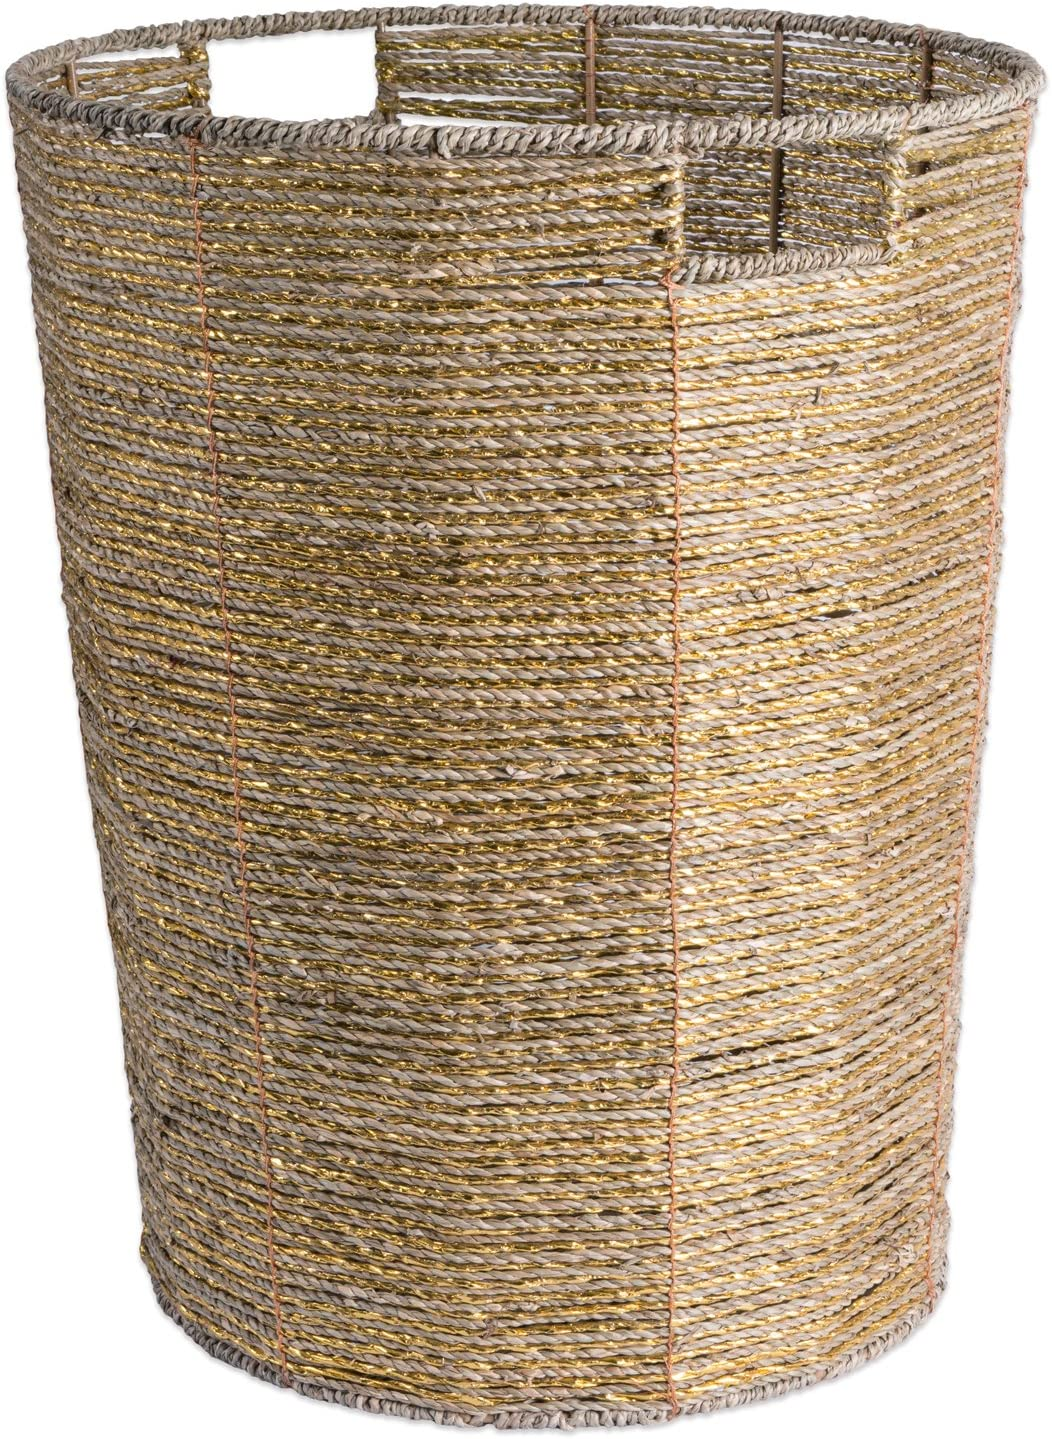 "DII CAMZ37611Decorative Woven Seagrass Laundry Hamper with Metallic for Bathroom & Home Organization Solutions to Enhance Décor & Add Functionality (Round Hamper - 16x20"") Gold"